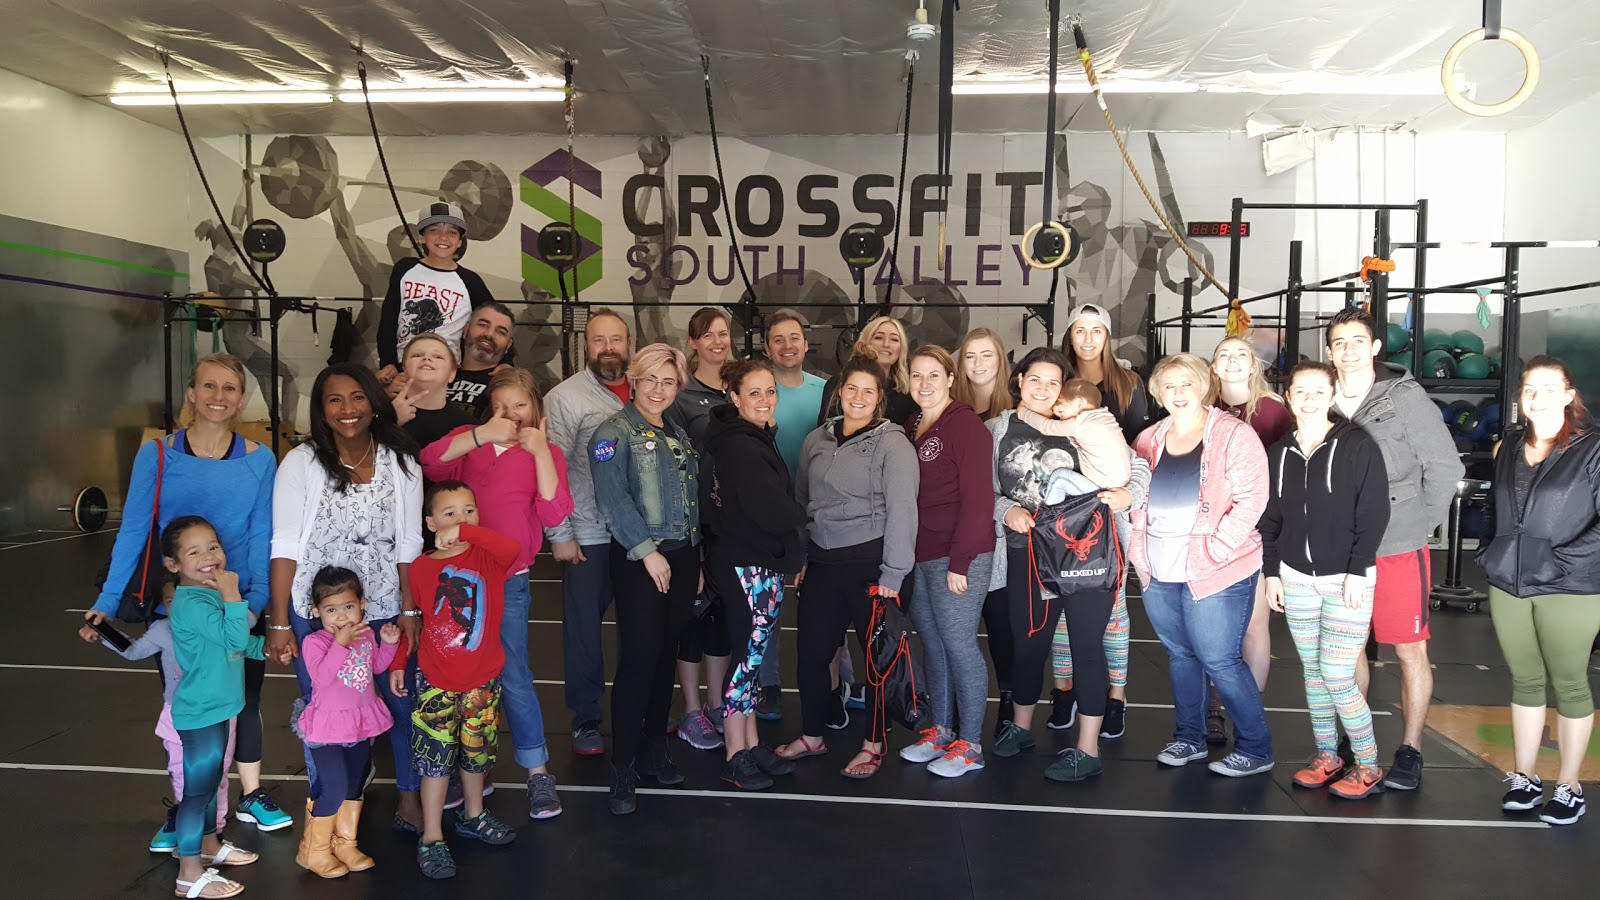 CrossFit South Valley - photo